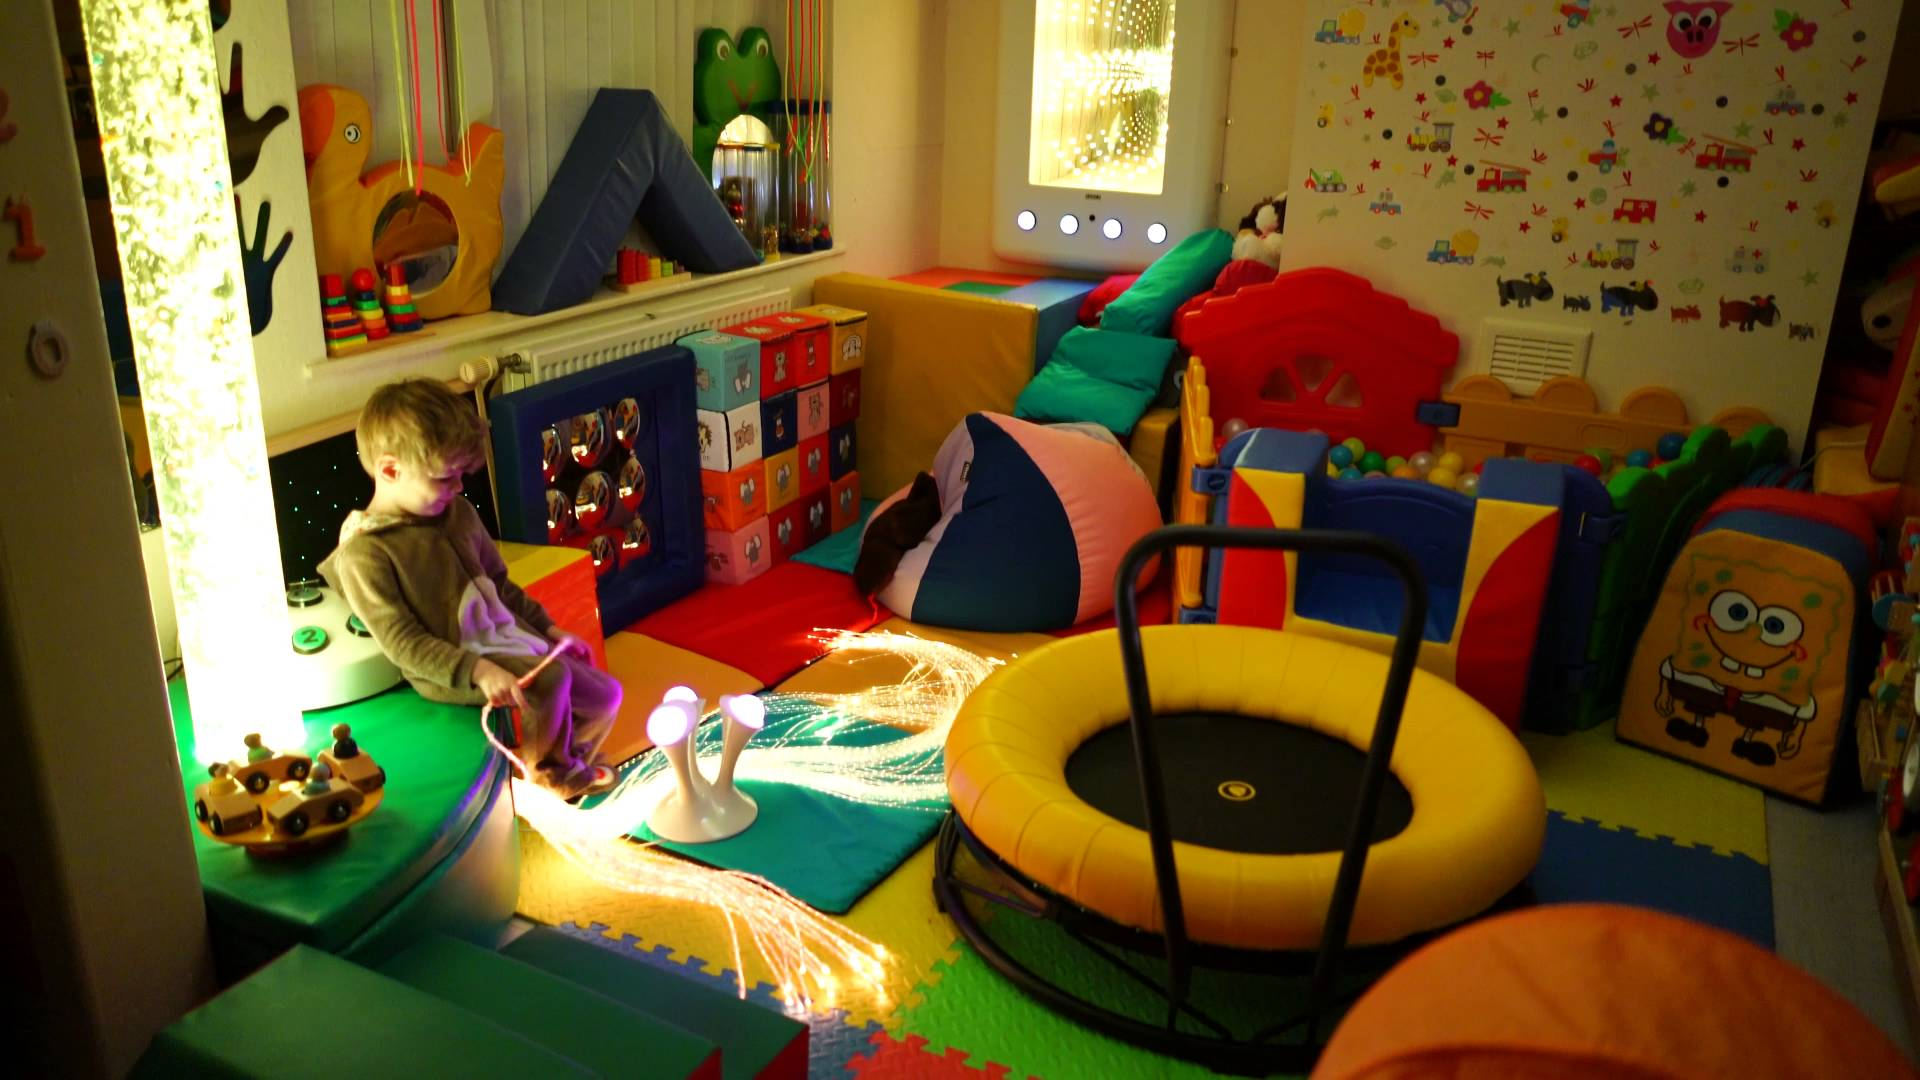 Sensory room idea for children with autism full of soft toys and furniture